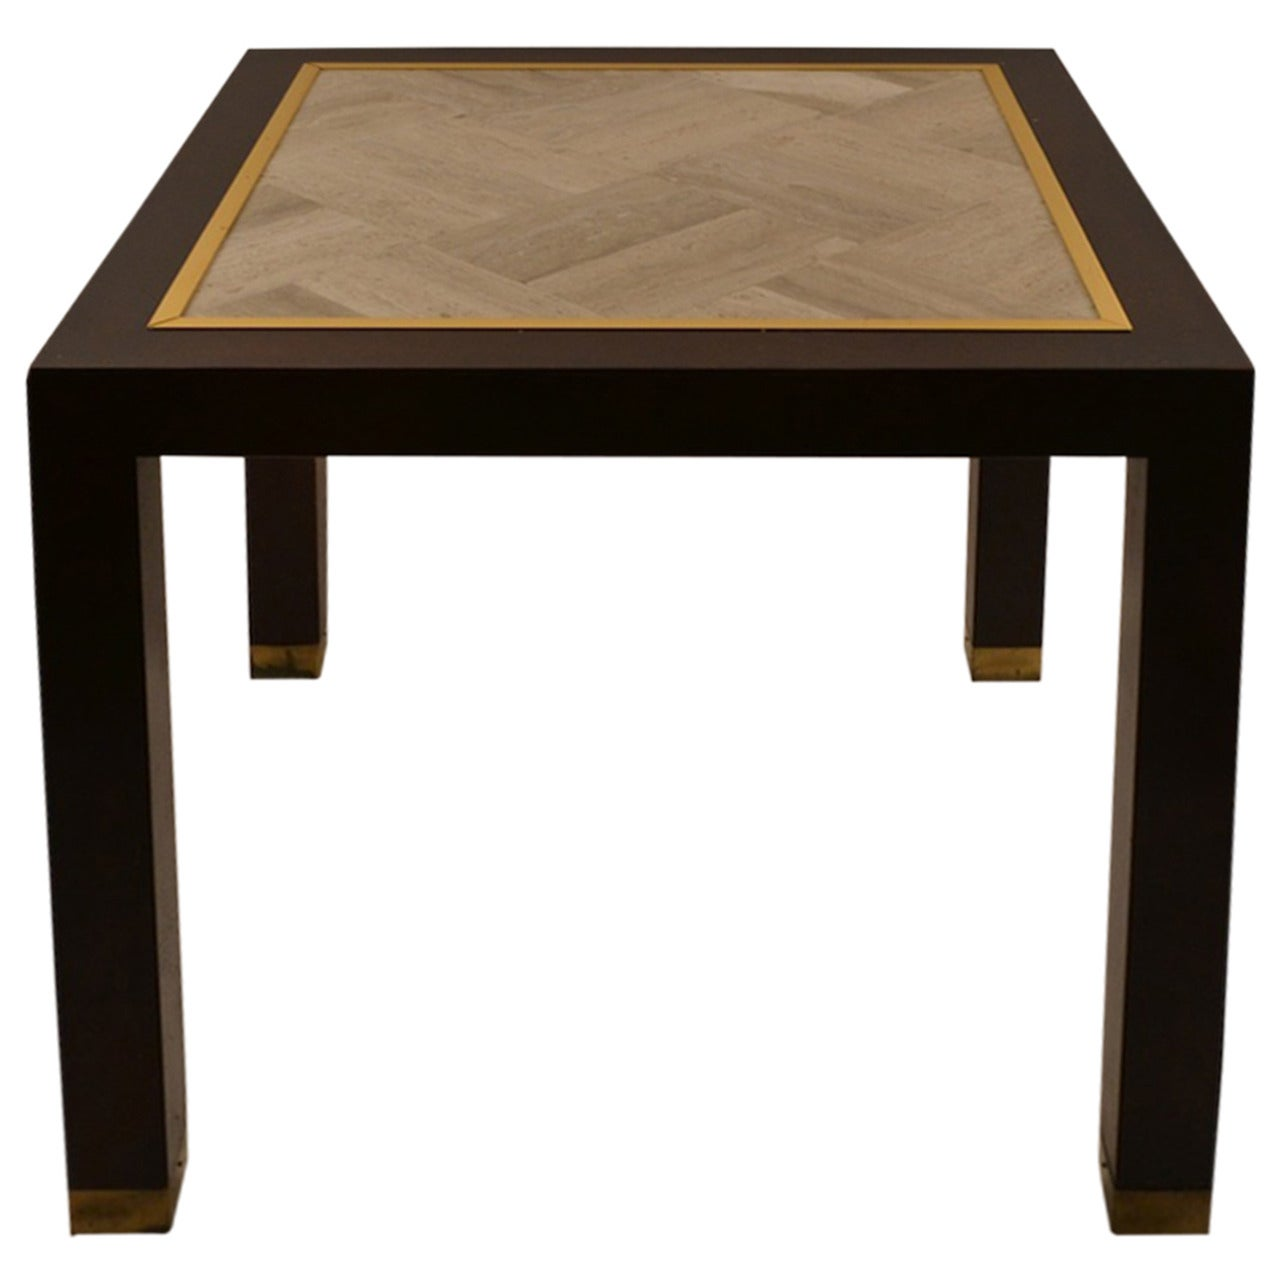 Square End Table with Parquetry Marble Top